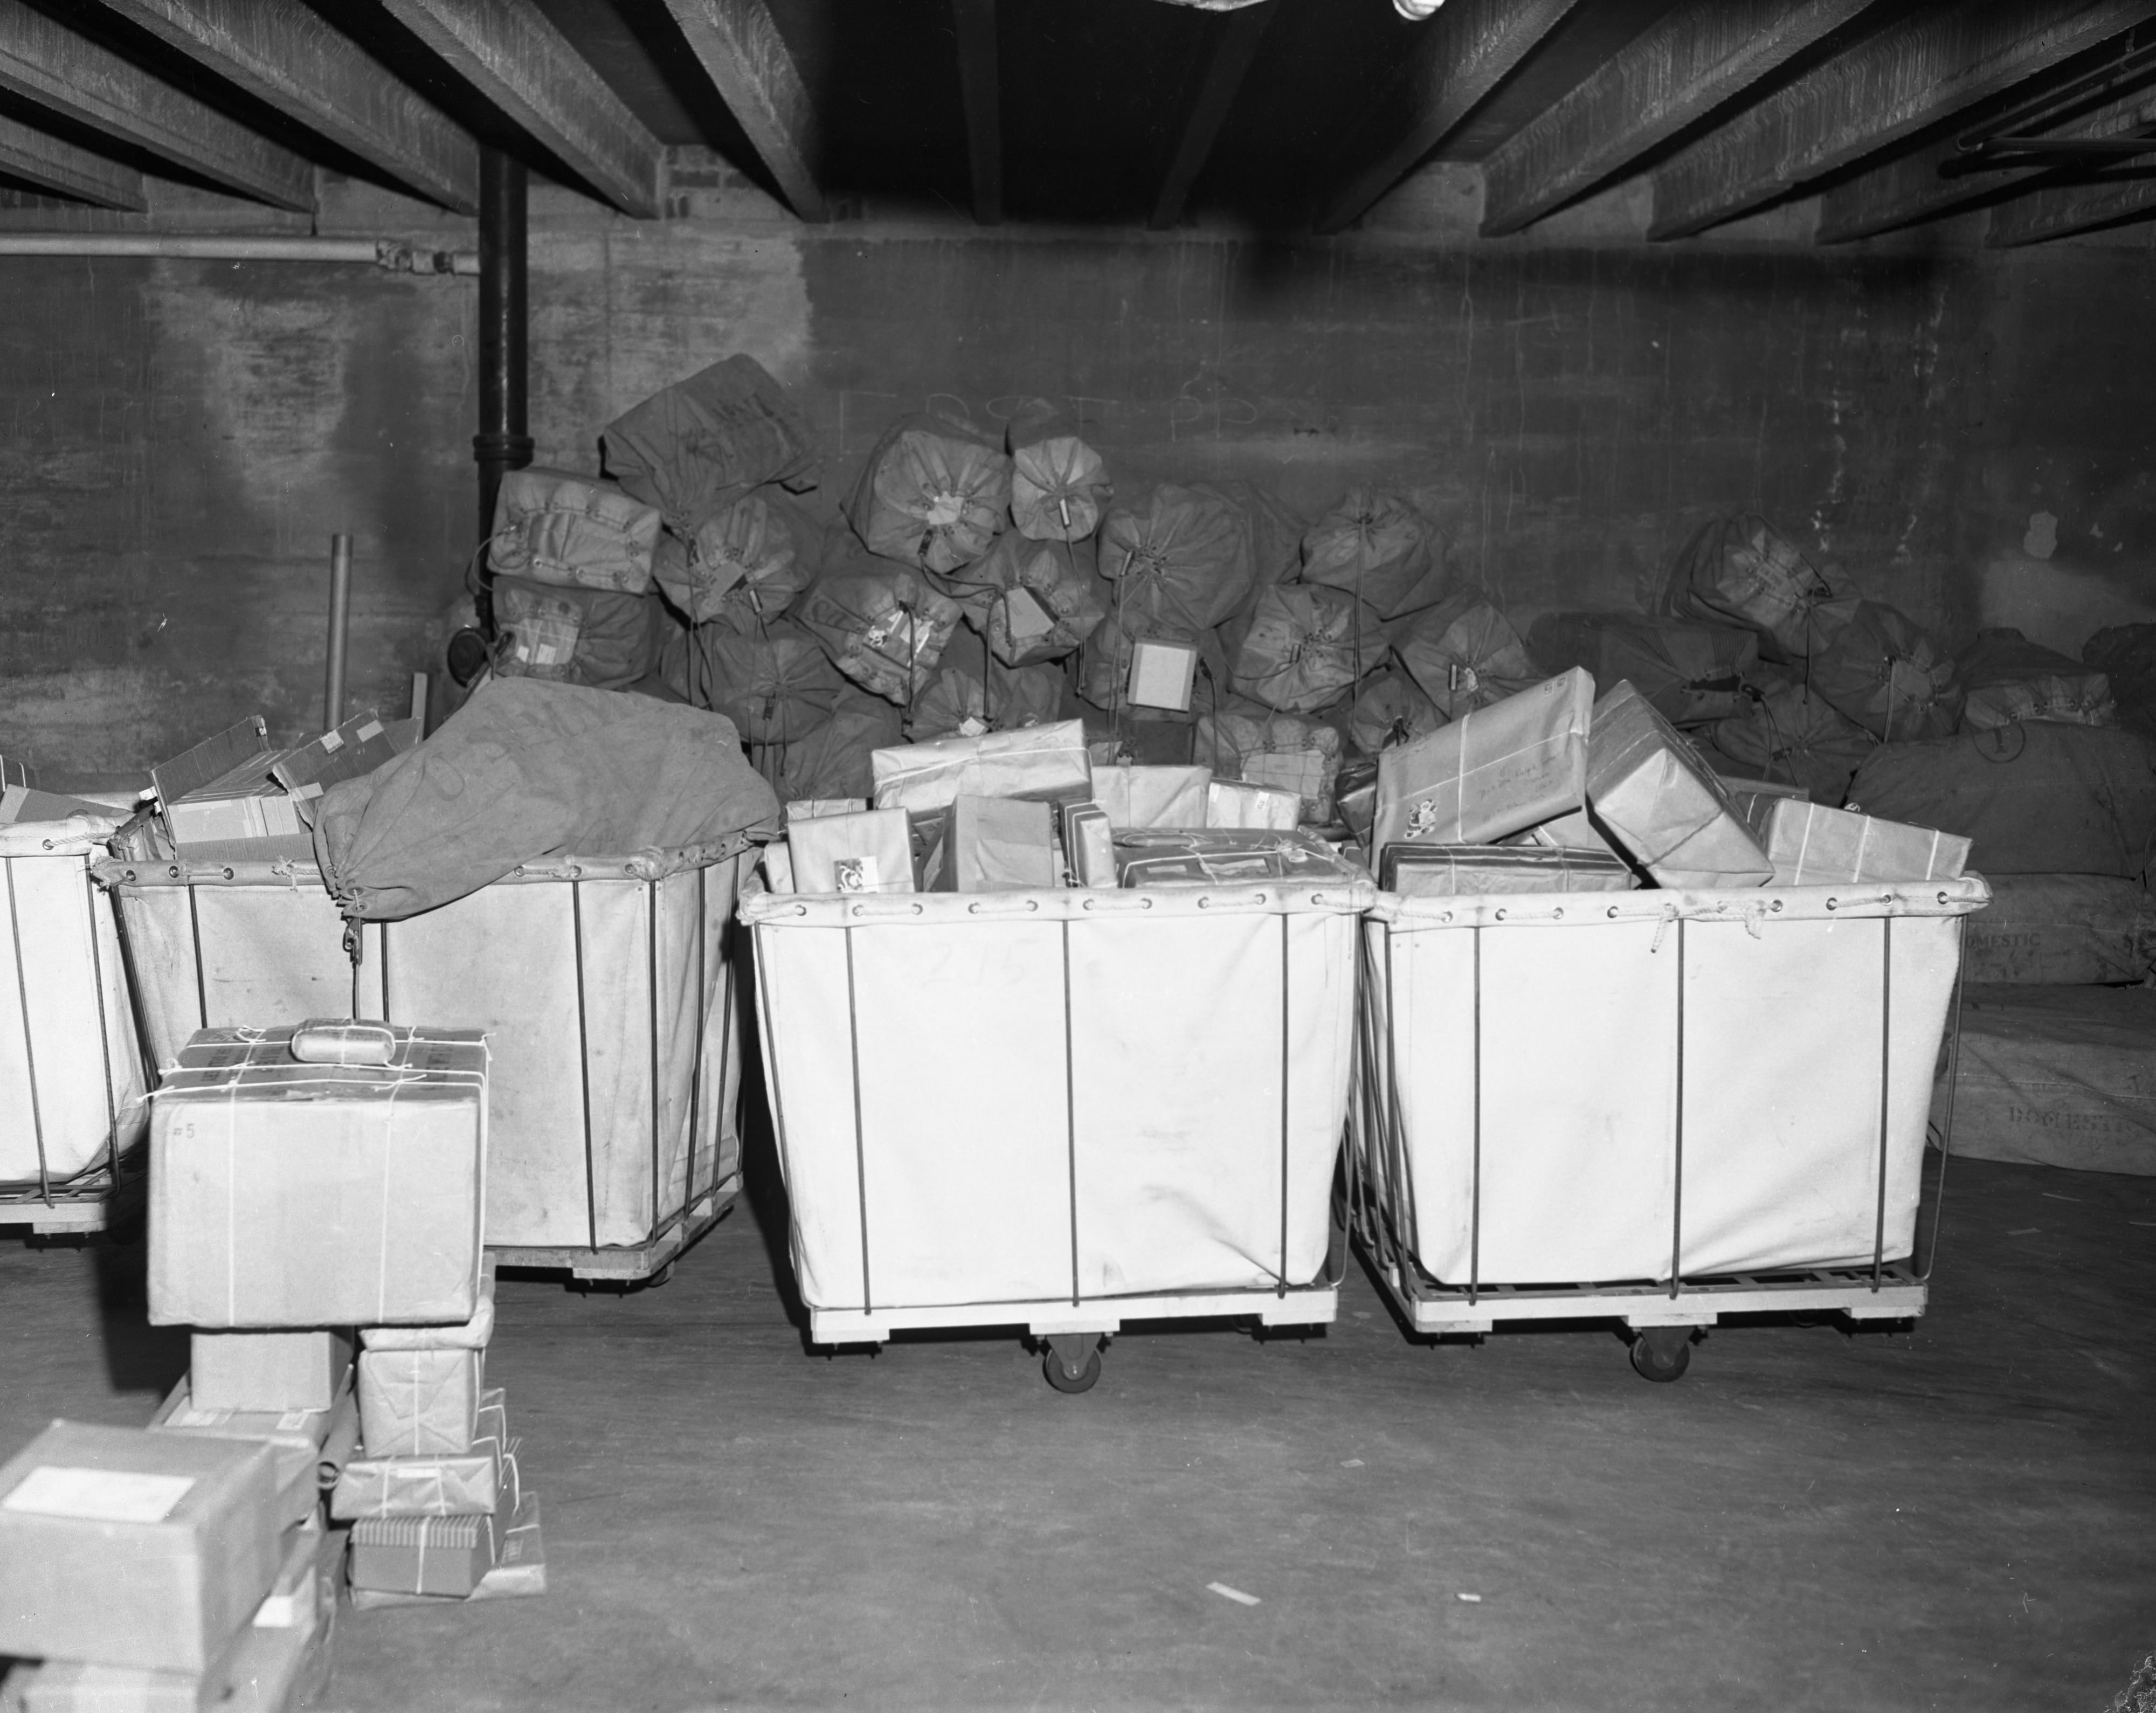 Holiday packages ready for shipment sit in the basement of an office building at N. Main and Depot Sts, December 1955 image